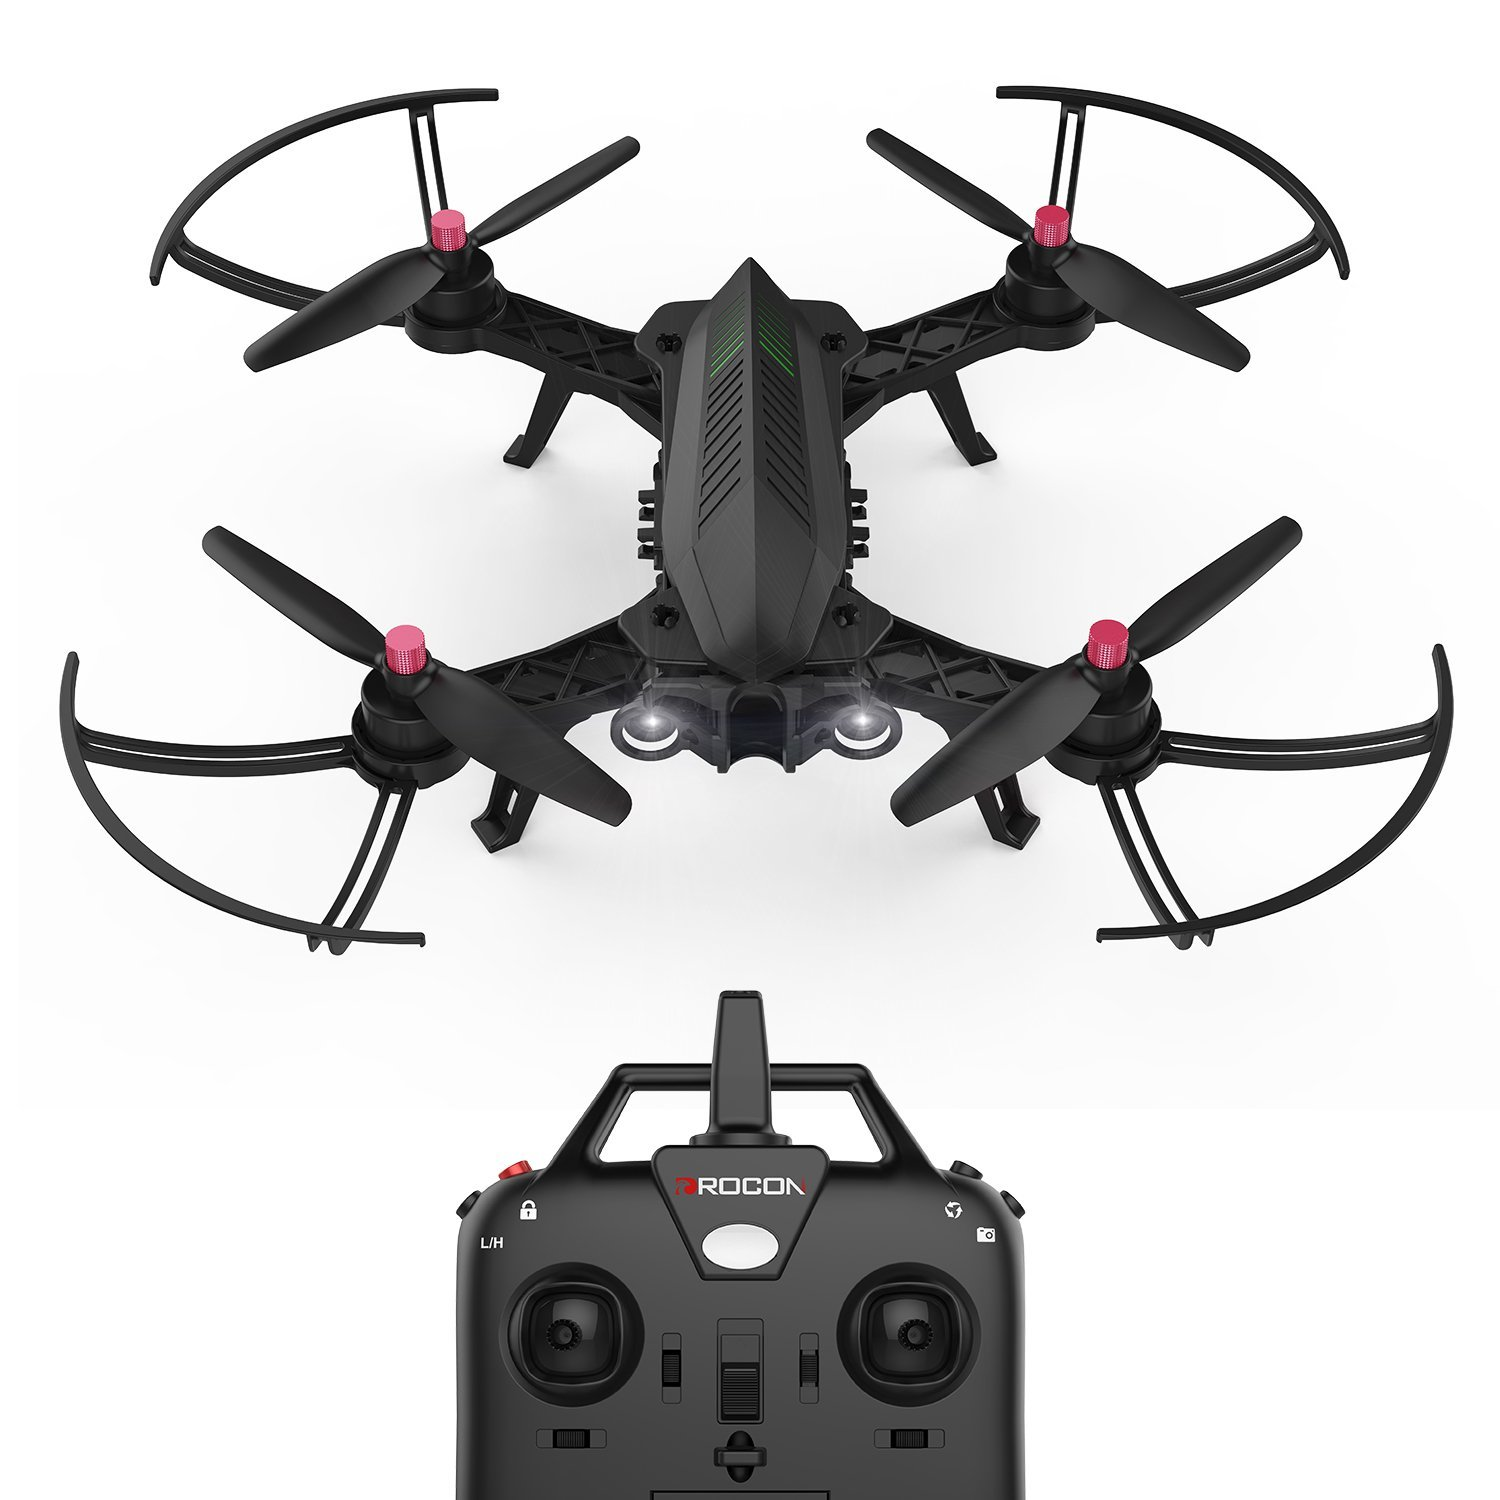 Only $104.99 For DROCON Bugs 6 Brushless Racing Drone with code EJ0034